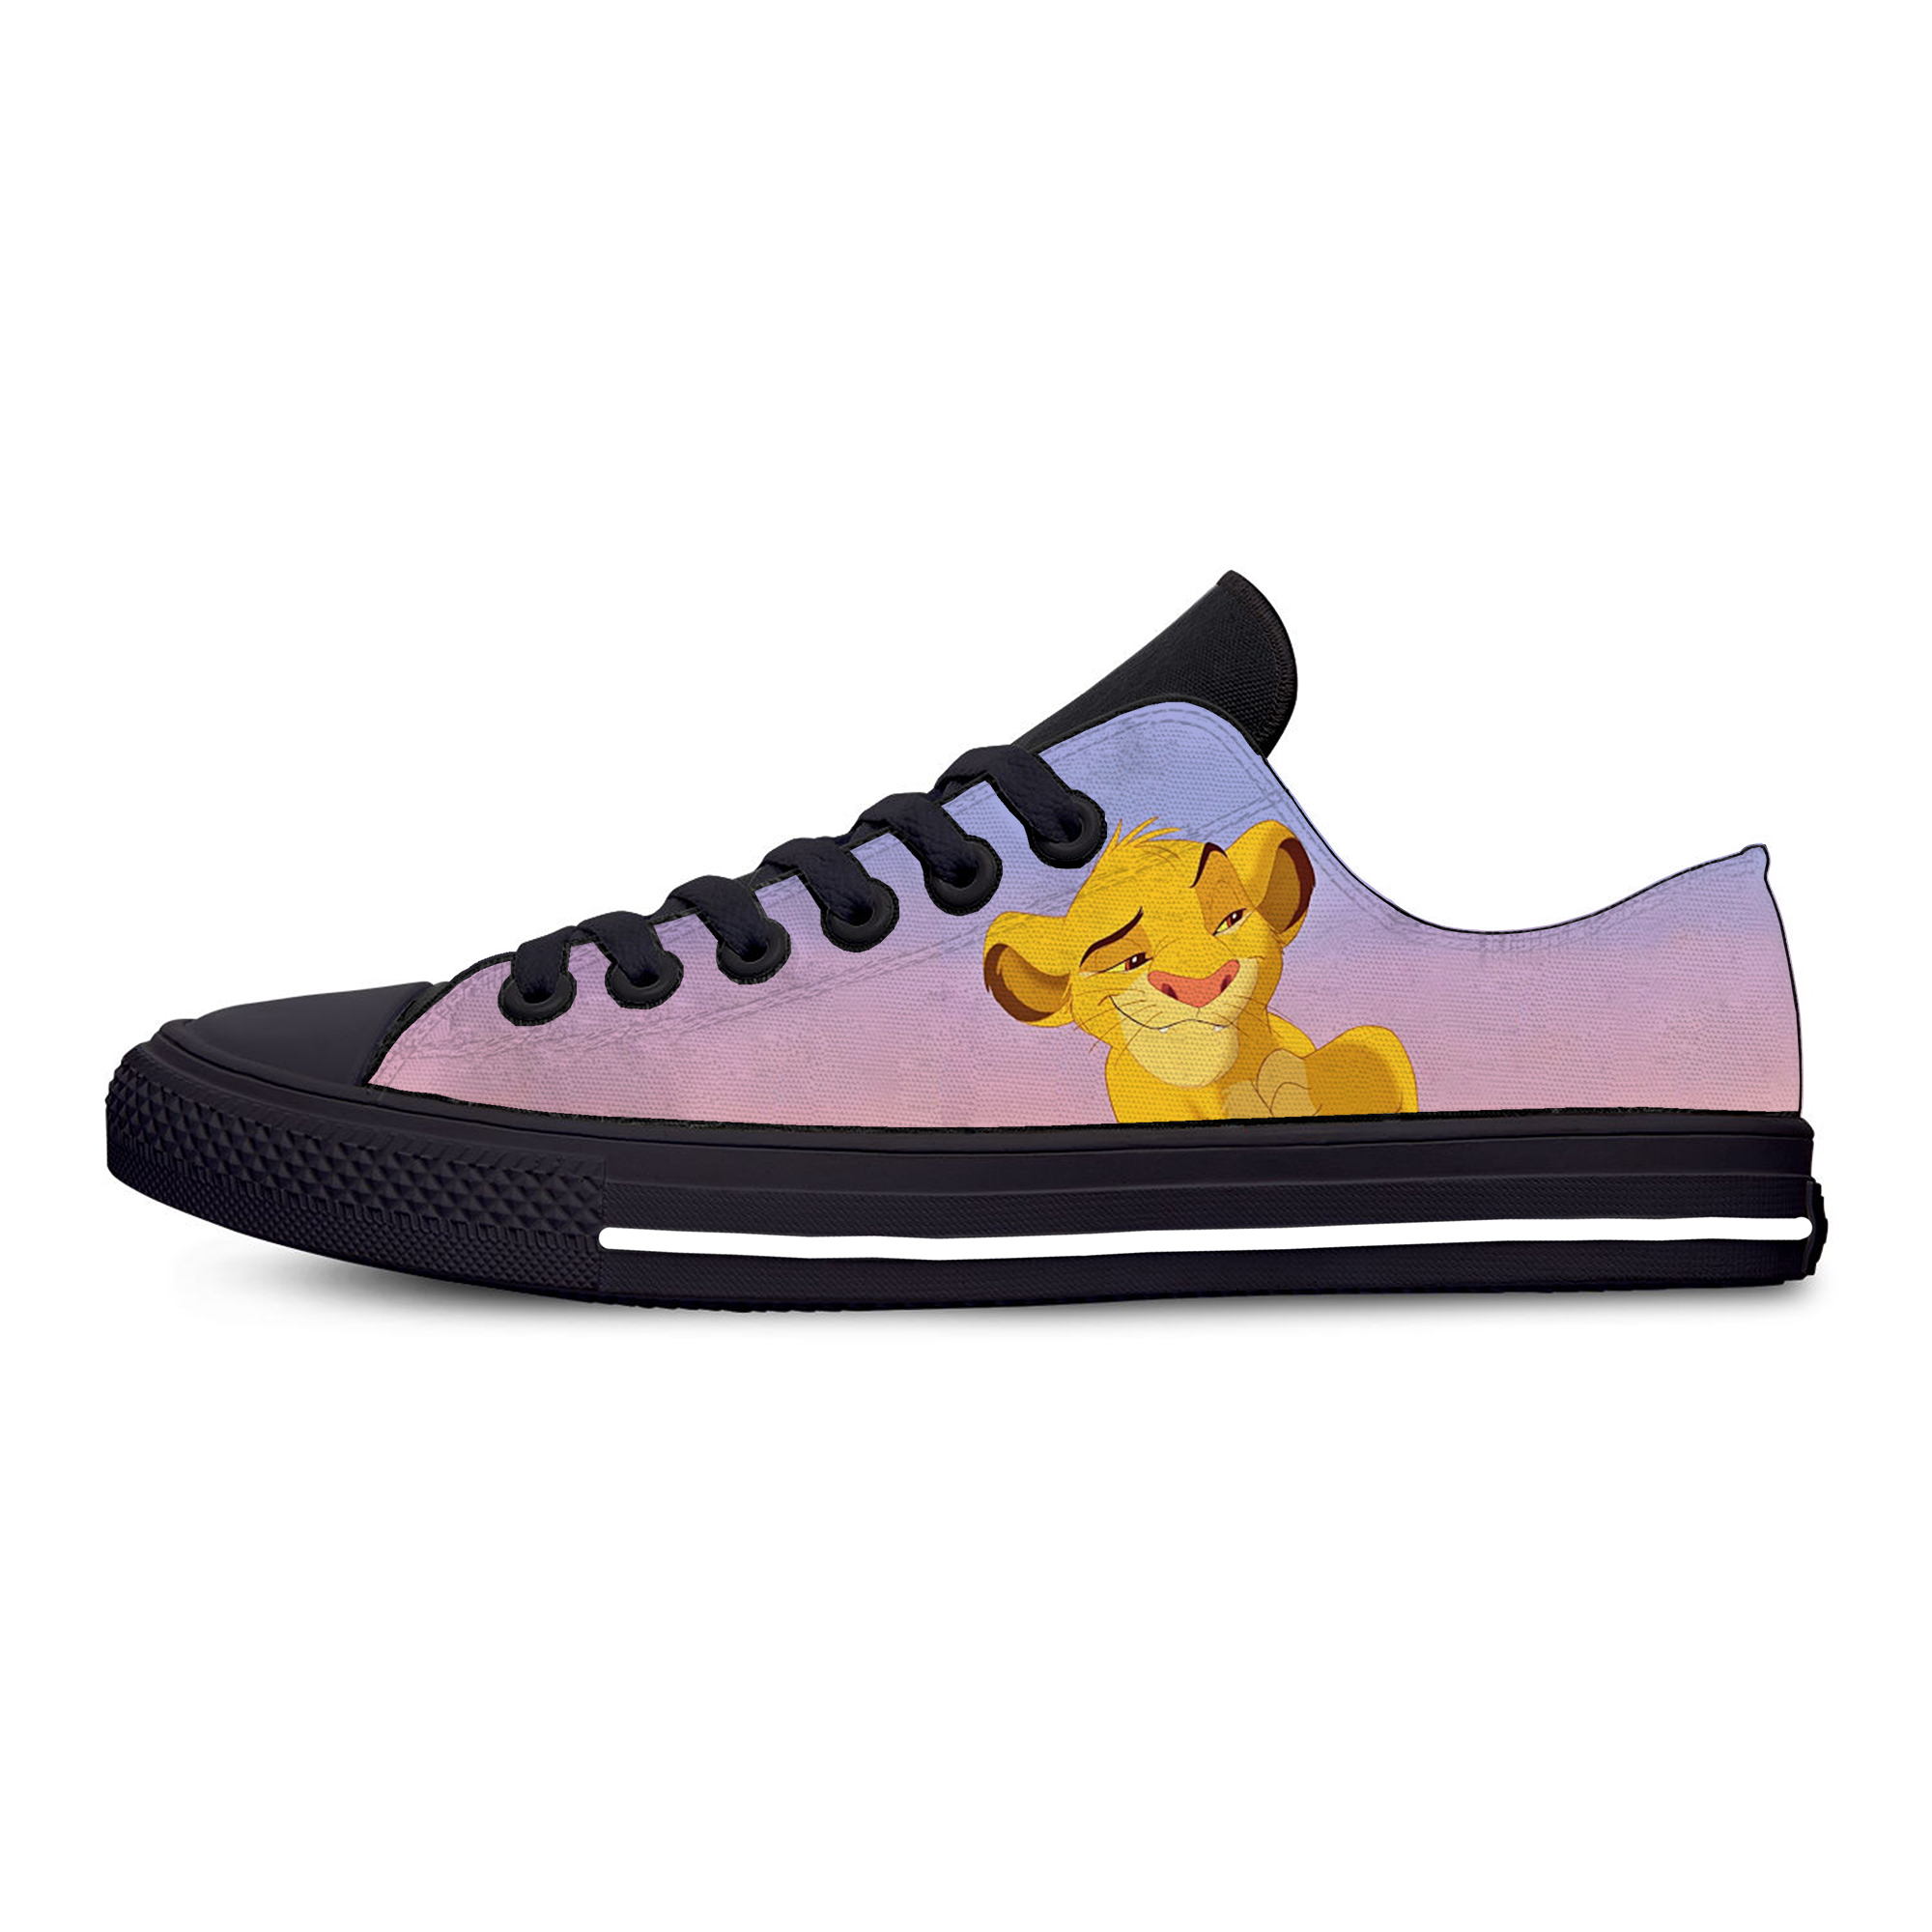 Lion King Cartoon Anime Simba Nala Fashion Funny Casual Canvas Shoes Low Top Lightweight Breathable 3D Print Men Women Sneakers